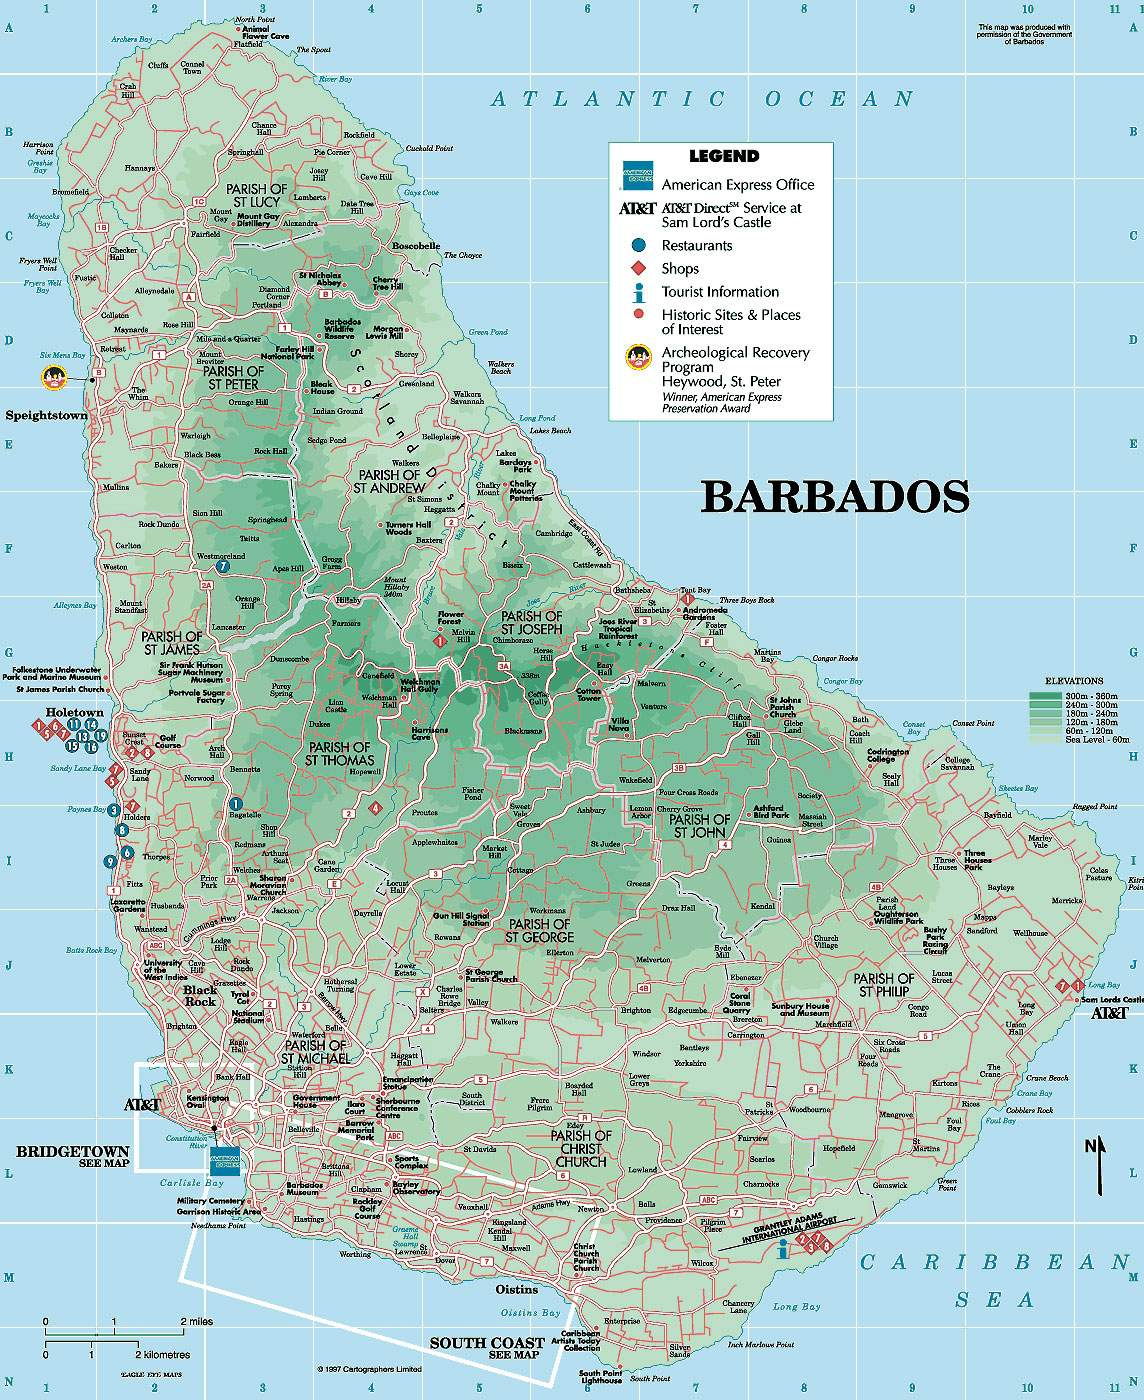 Large Barbados Maps for Free Download | High-Resolution and ...